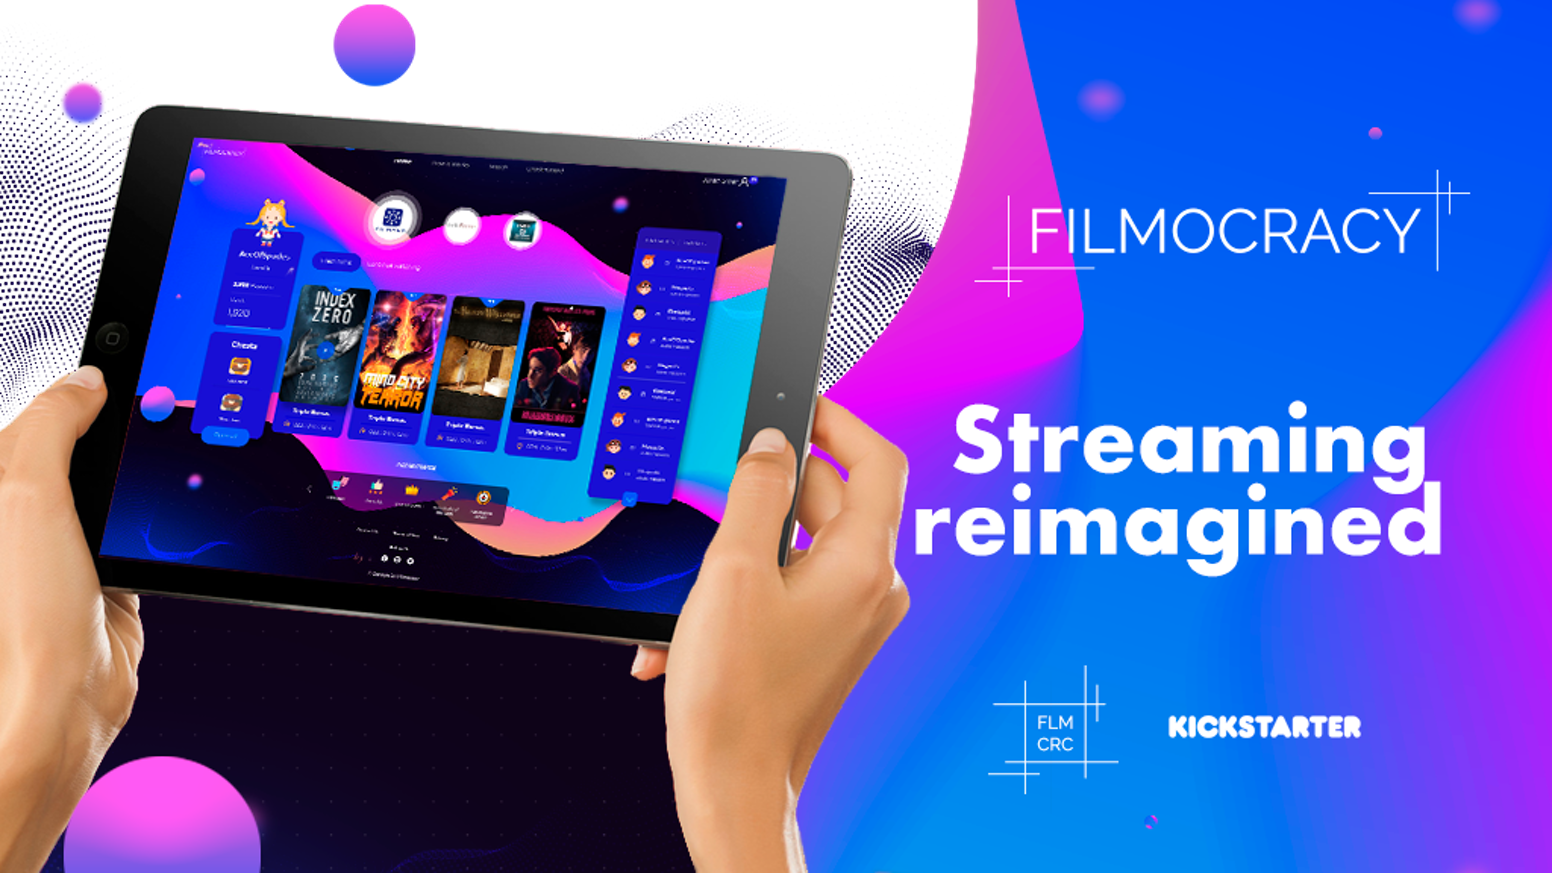 The ONLY movie streaming platform that PAYS you to watch films & leave reviews. Earn movie tickets, cash, & cool prizes!